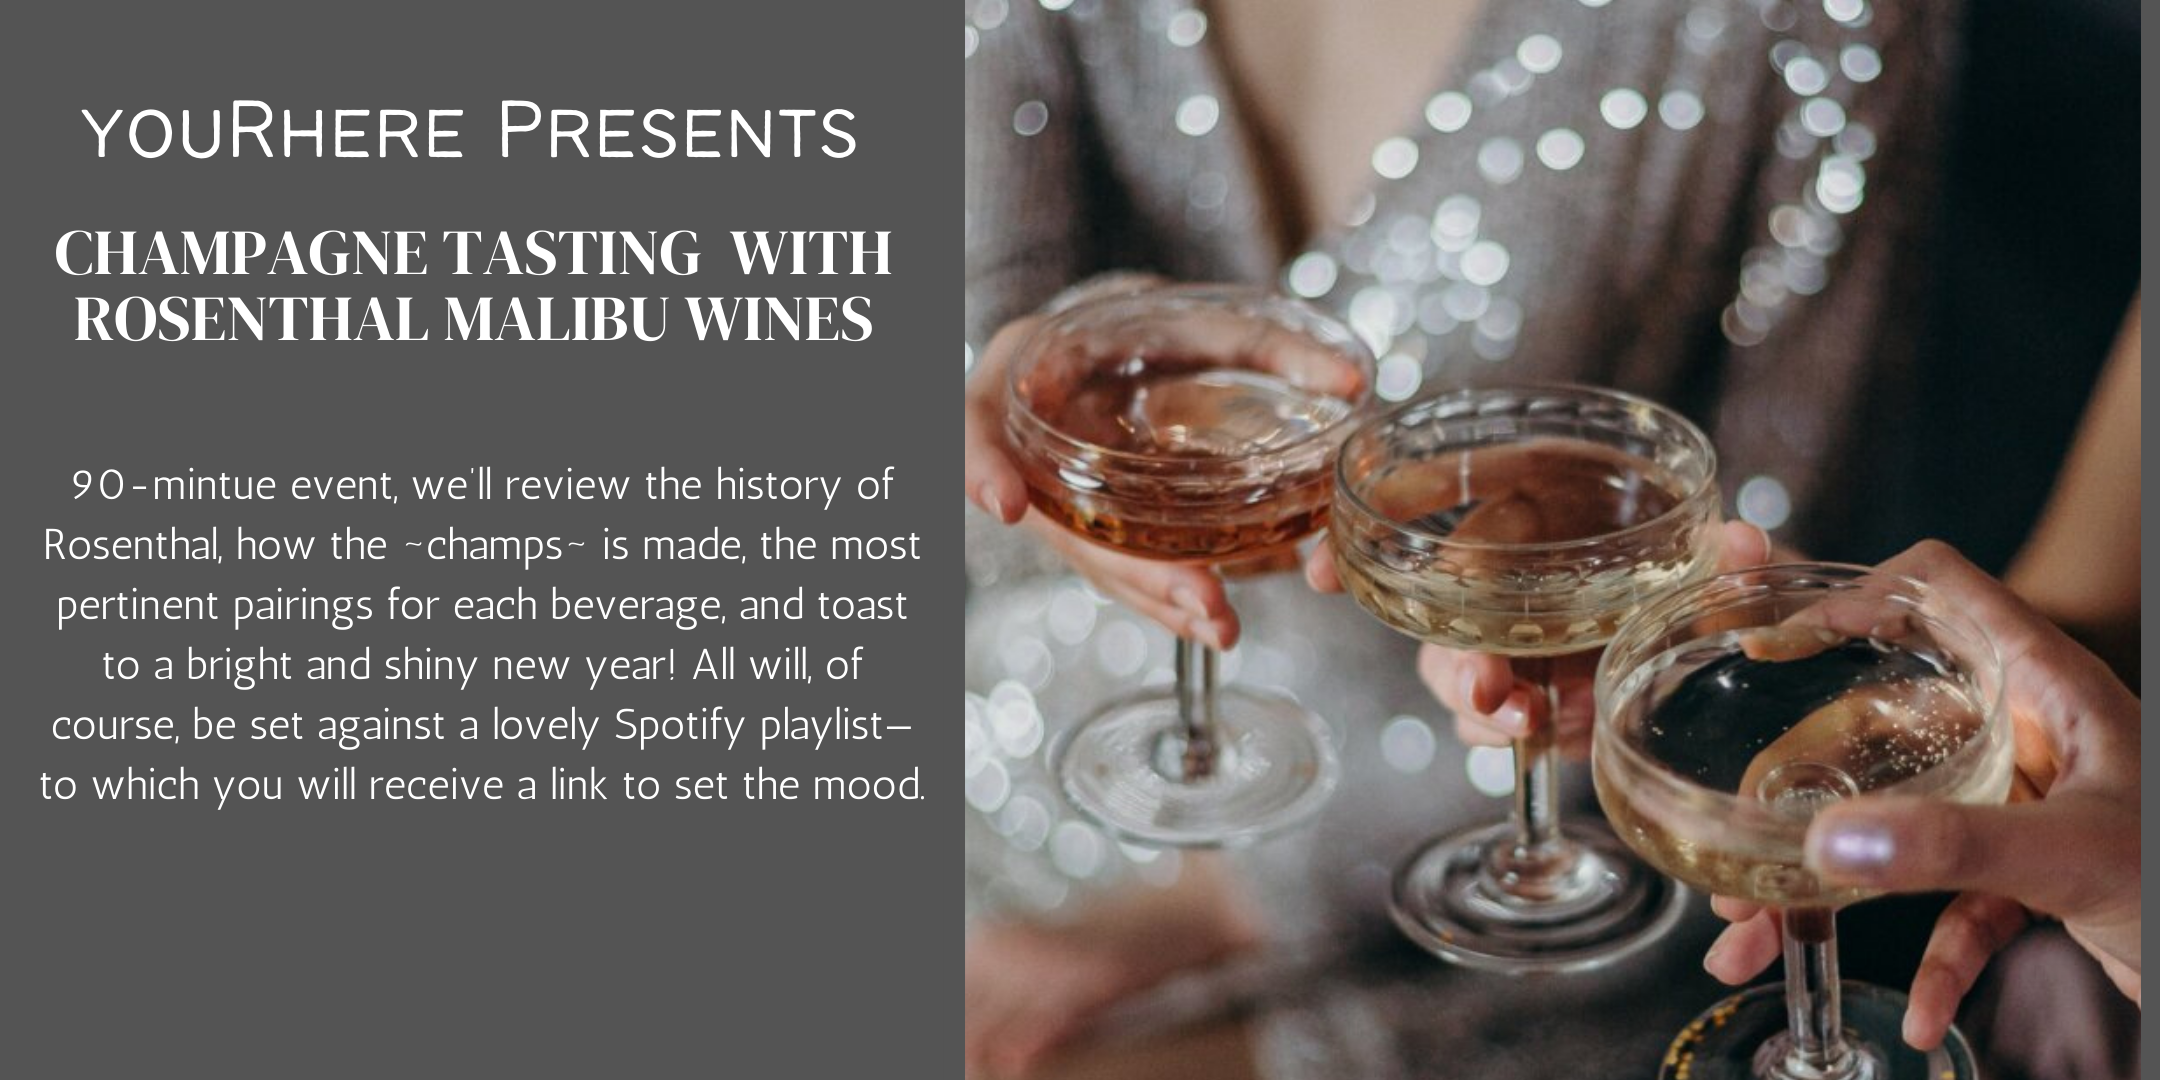 Champagne Tasting  Virtual Event With Rosenthal Malibu Wines + youRhere